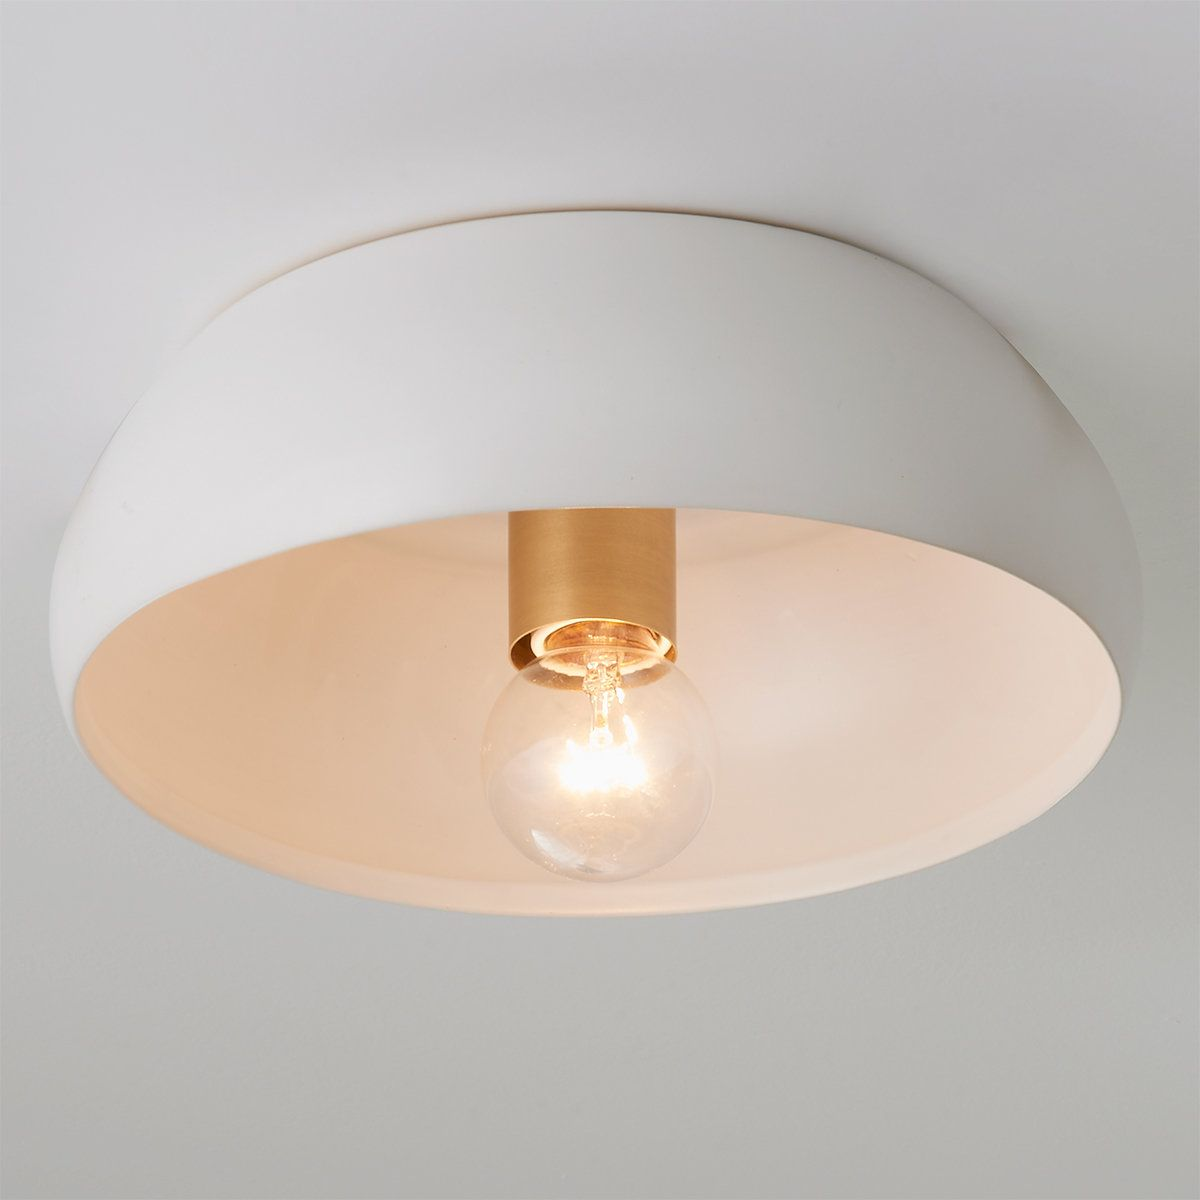 Soothing tones and soft organic shapes define the look of this matte hand glazed ceramic ceiling light. Assembled by hand in our Richmond, Virginia production facility with solid brass hardware, this ceiling light is a great example of quality craftmanship that is sure to stand the test of time.